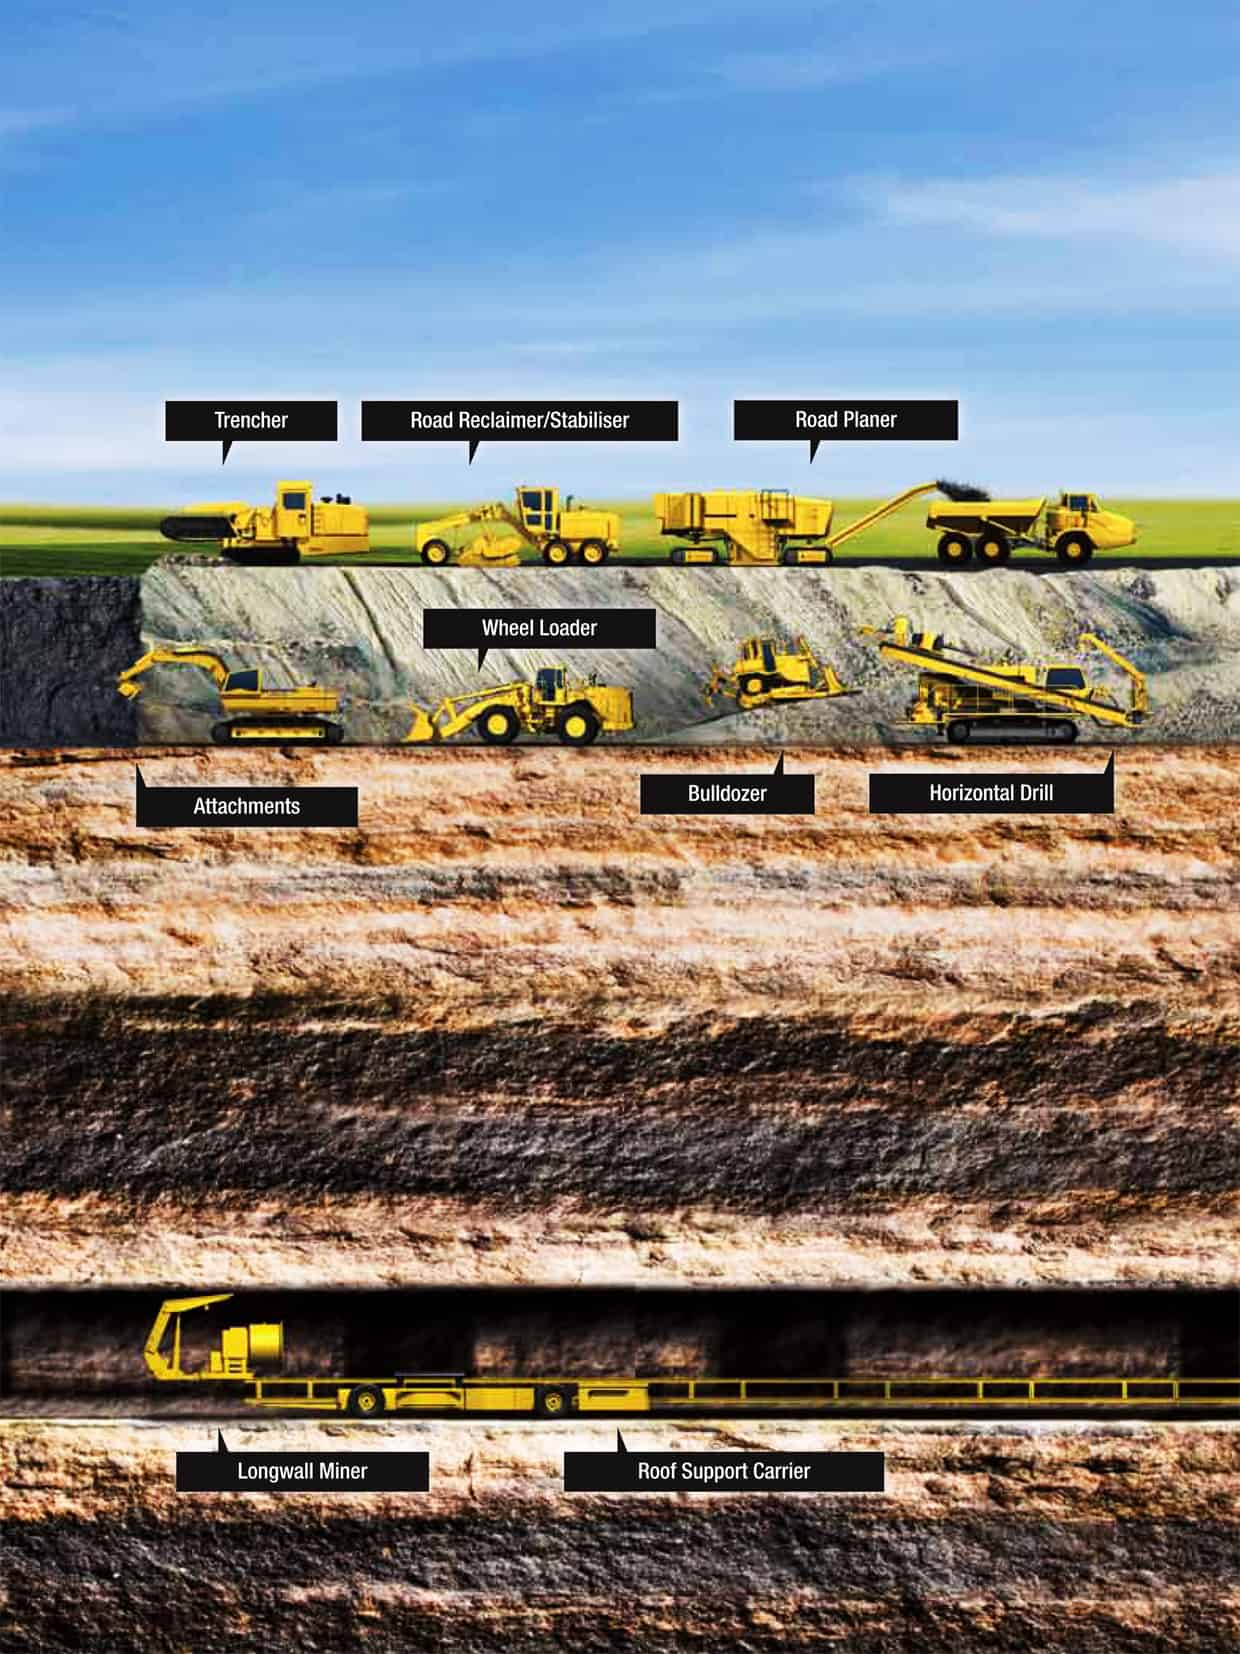 Illustration of mining vehicles working in a mine